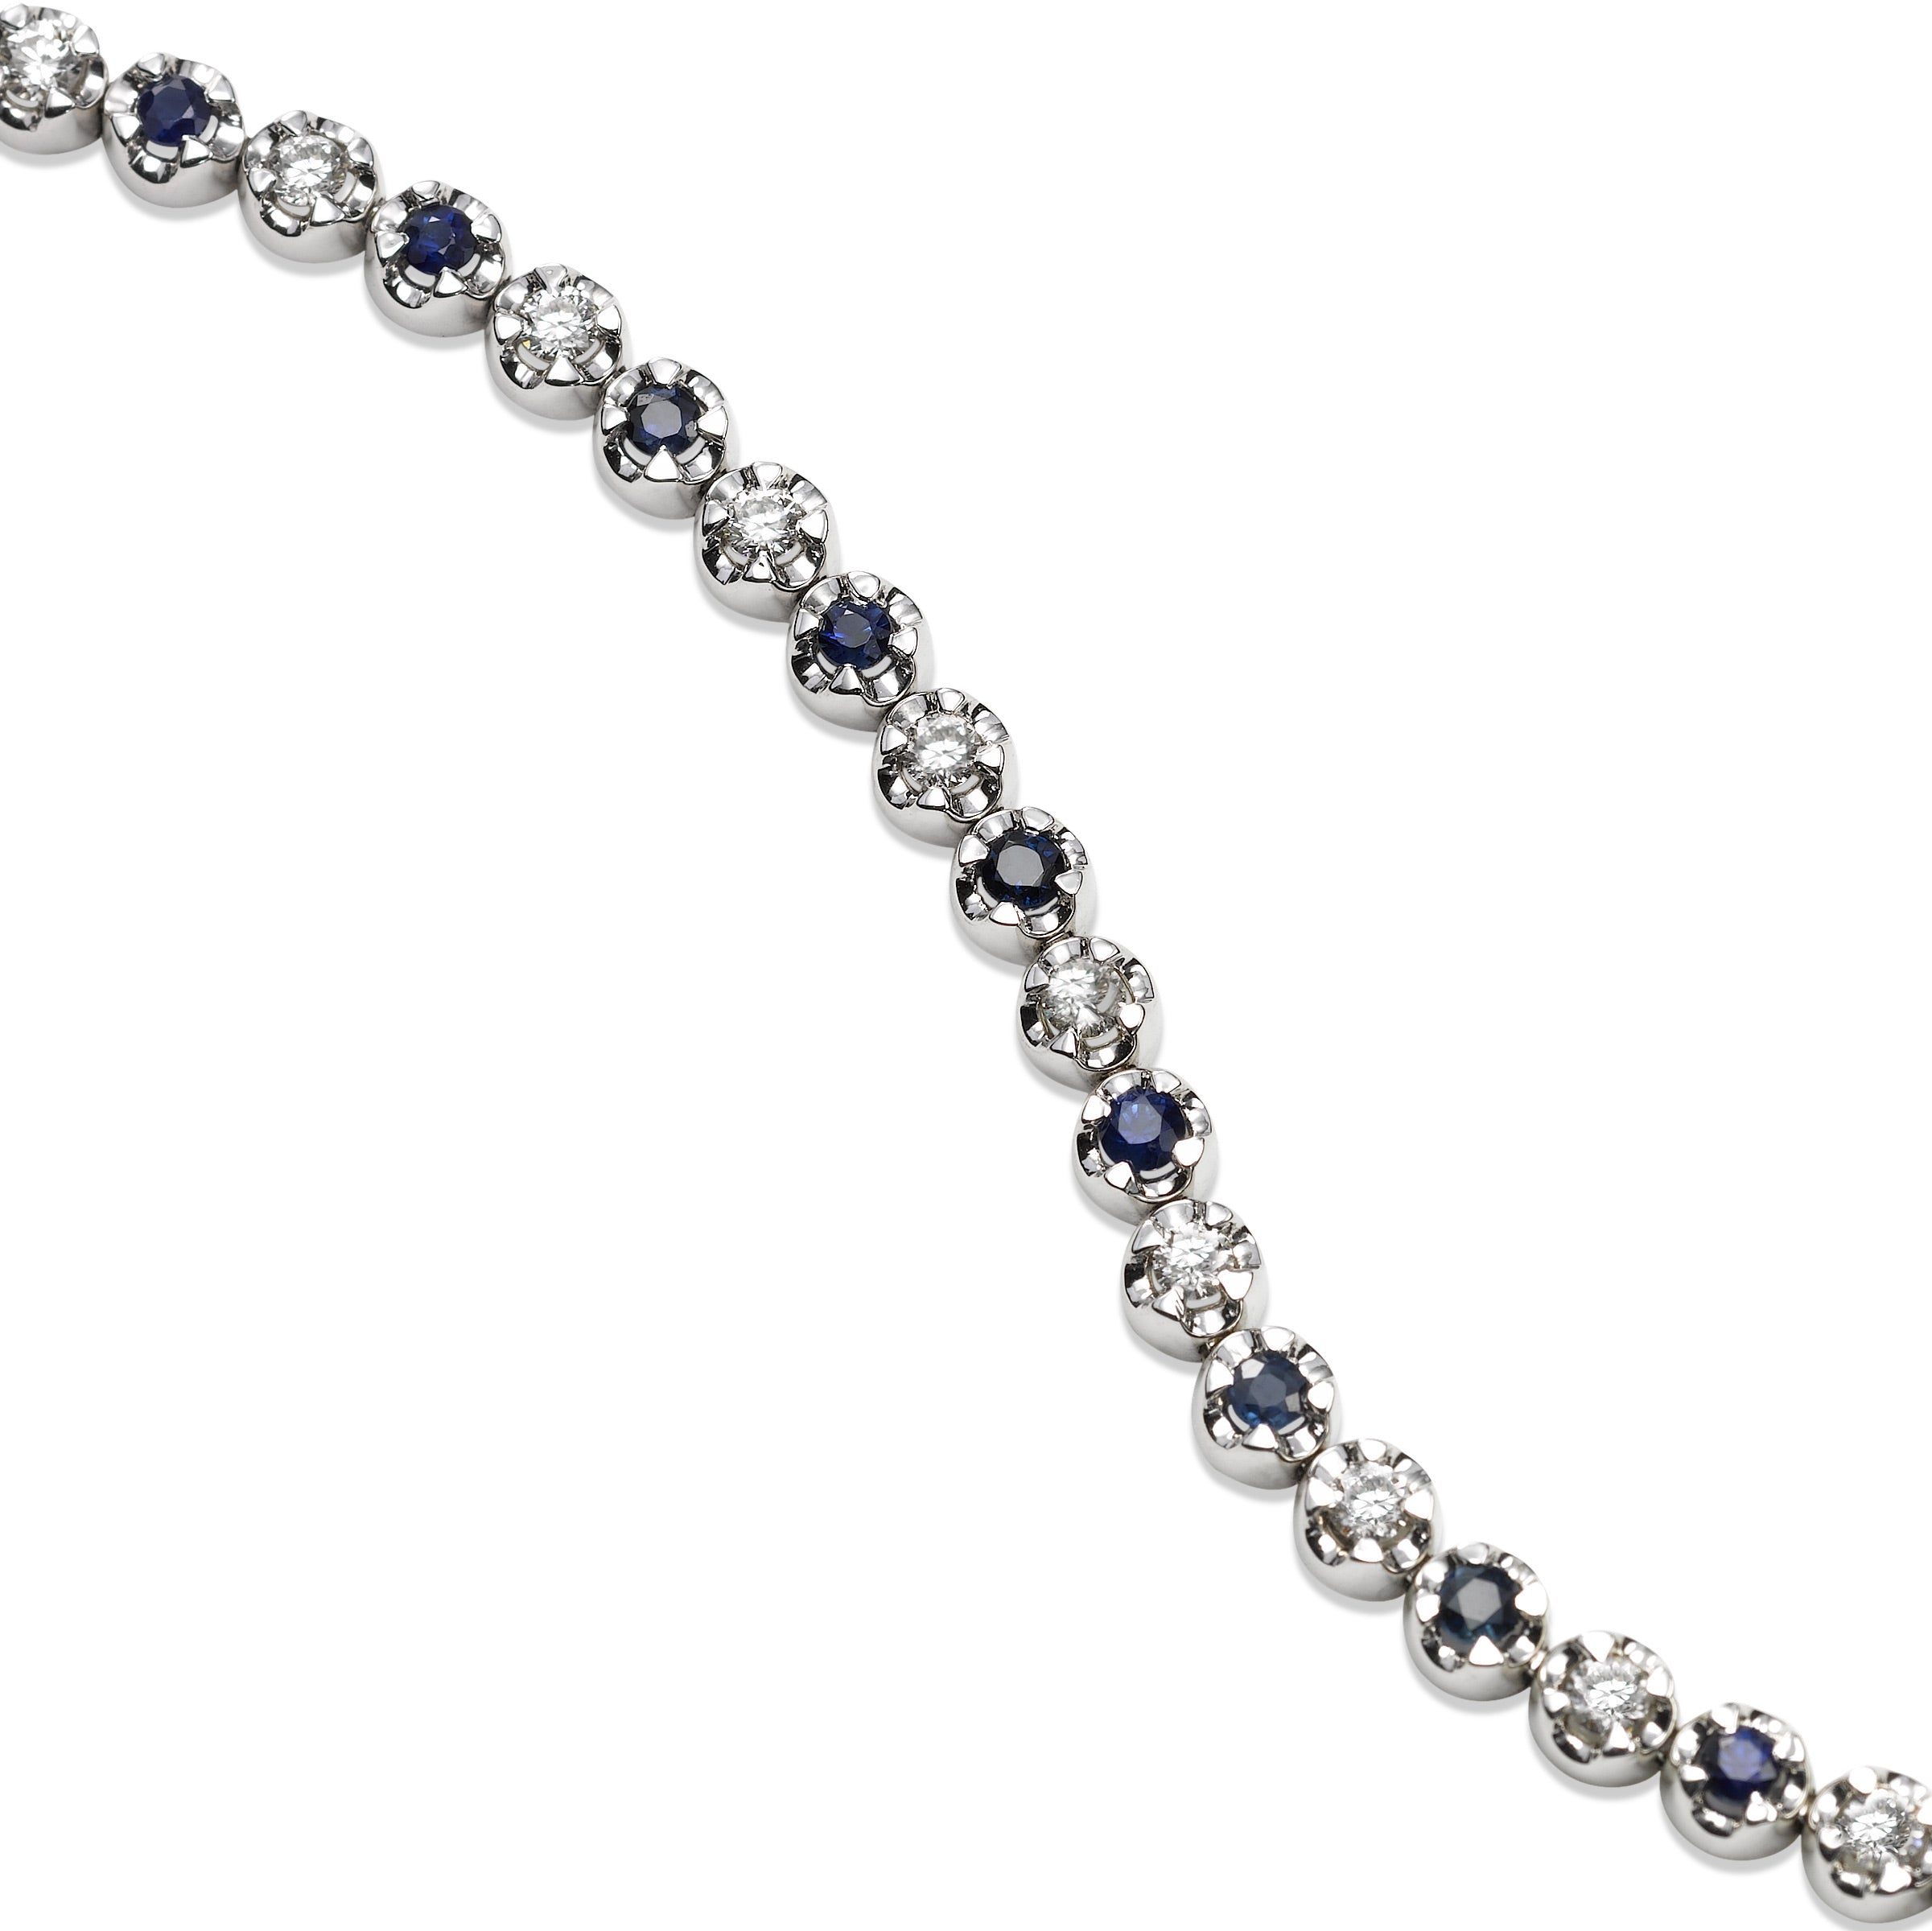 Small Blue Sapphire and Diamond Bracelet, 14K White Gold